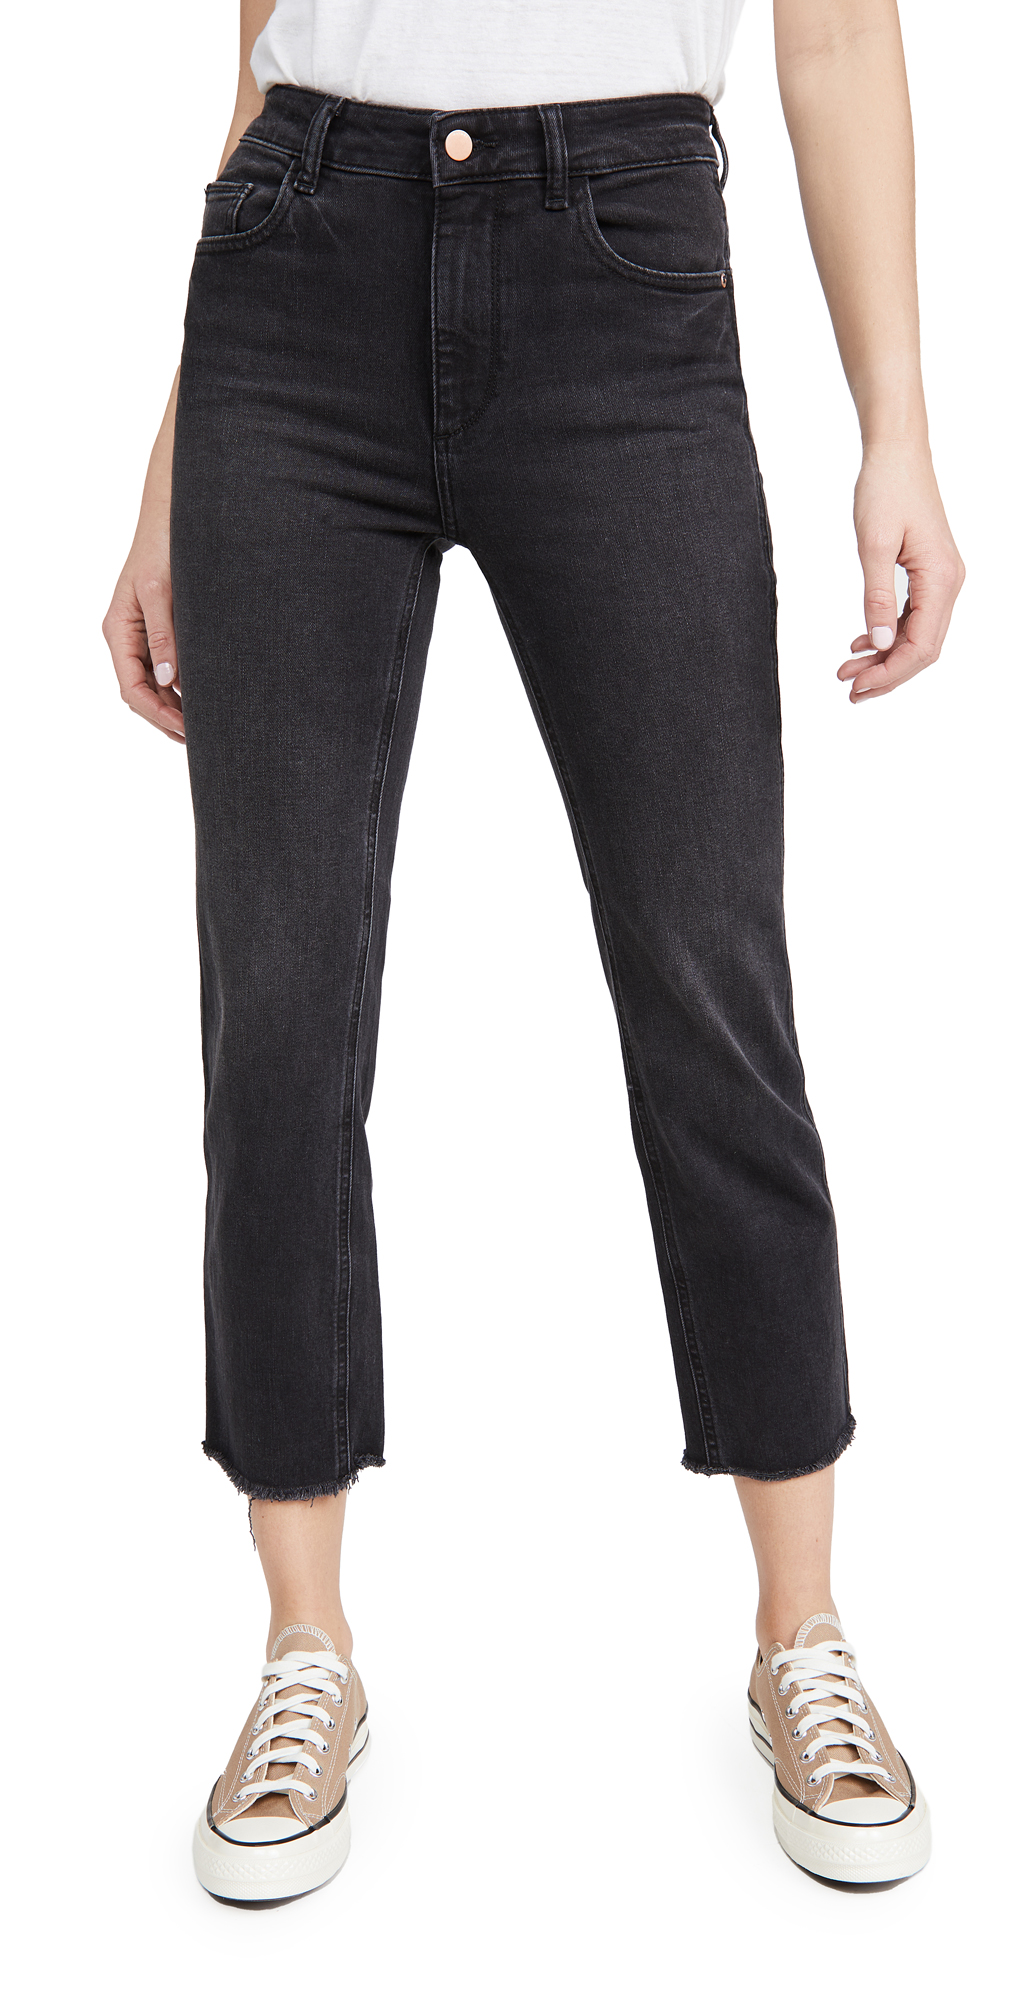 DL1961 Patti High Rise Vintage Straight Jeans